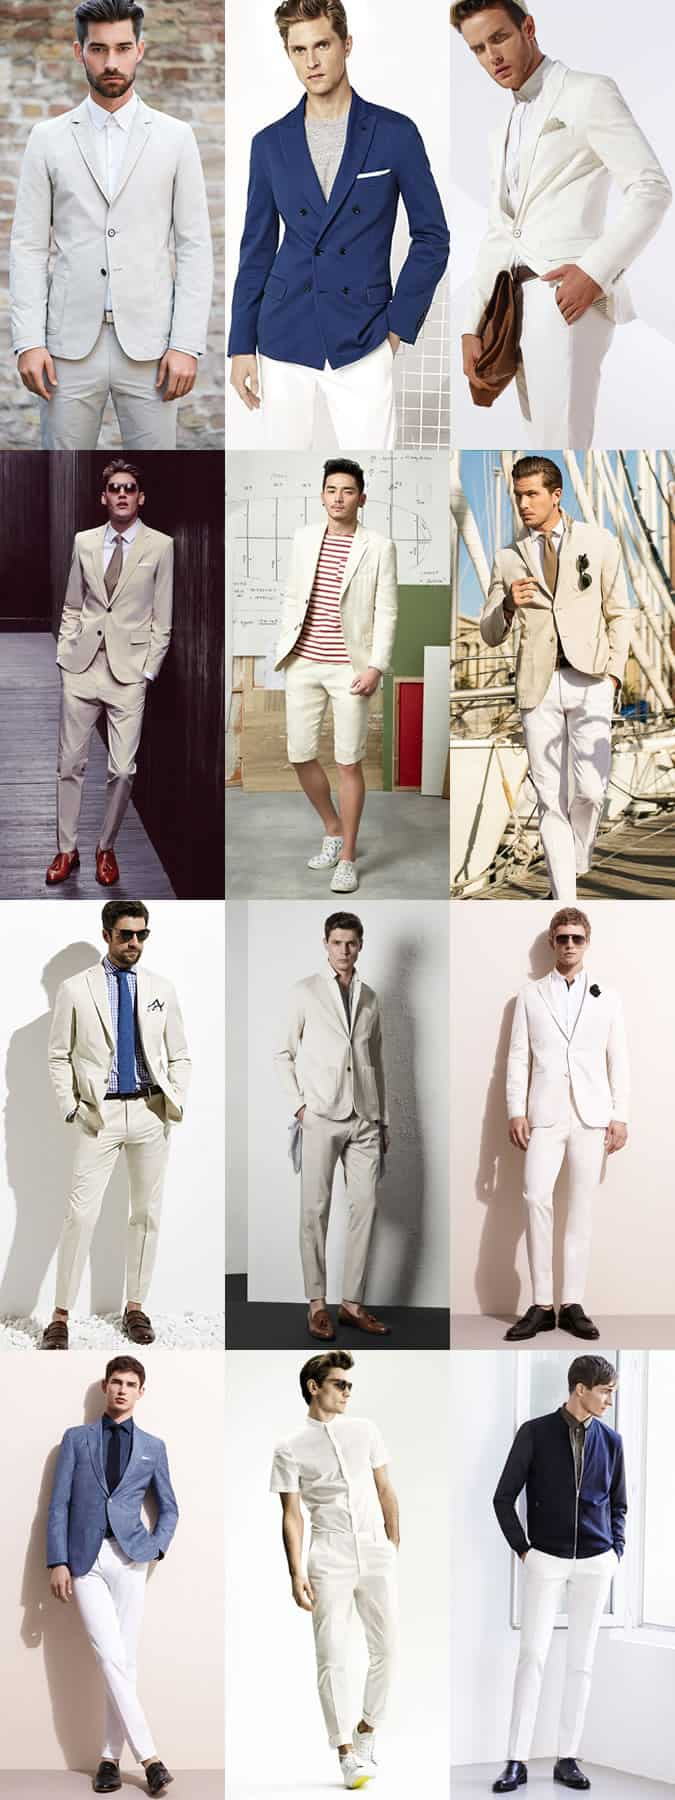 Men's Neutral Cotton Suits and Separates Outfit Lookbook Inspiration